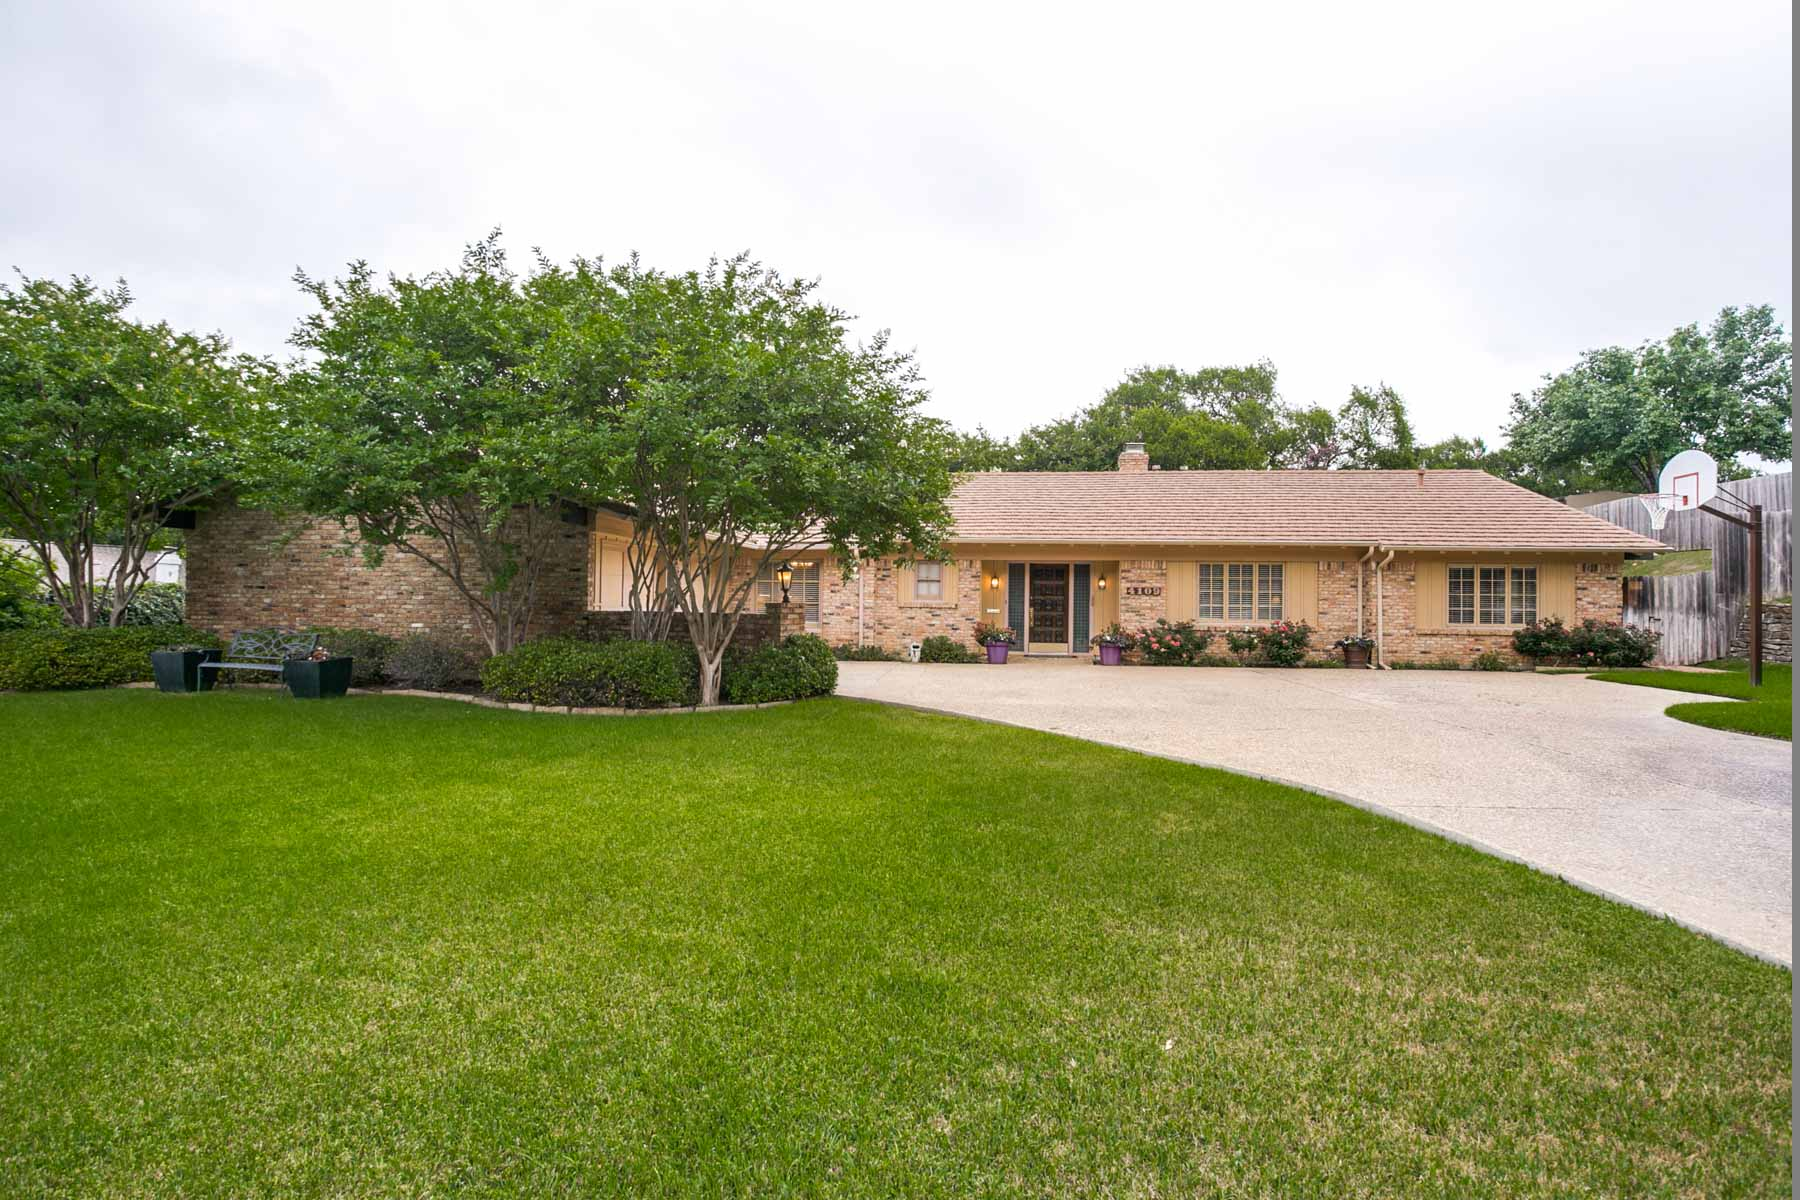 Single Family Home for Sale at Tanglewood, Maintained & Updated Home 4109 Sarita Drive Fort Worth, Texas, 76109 United States